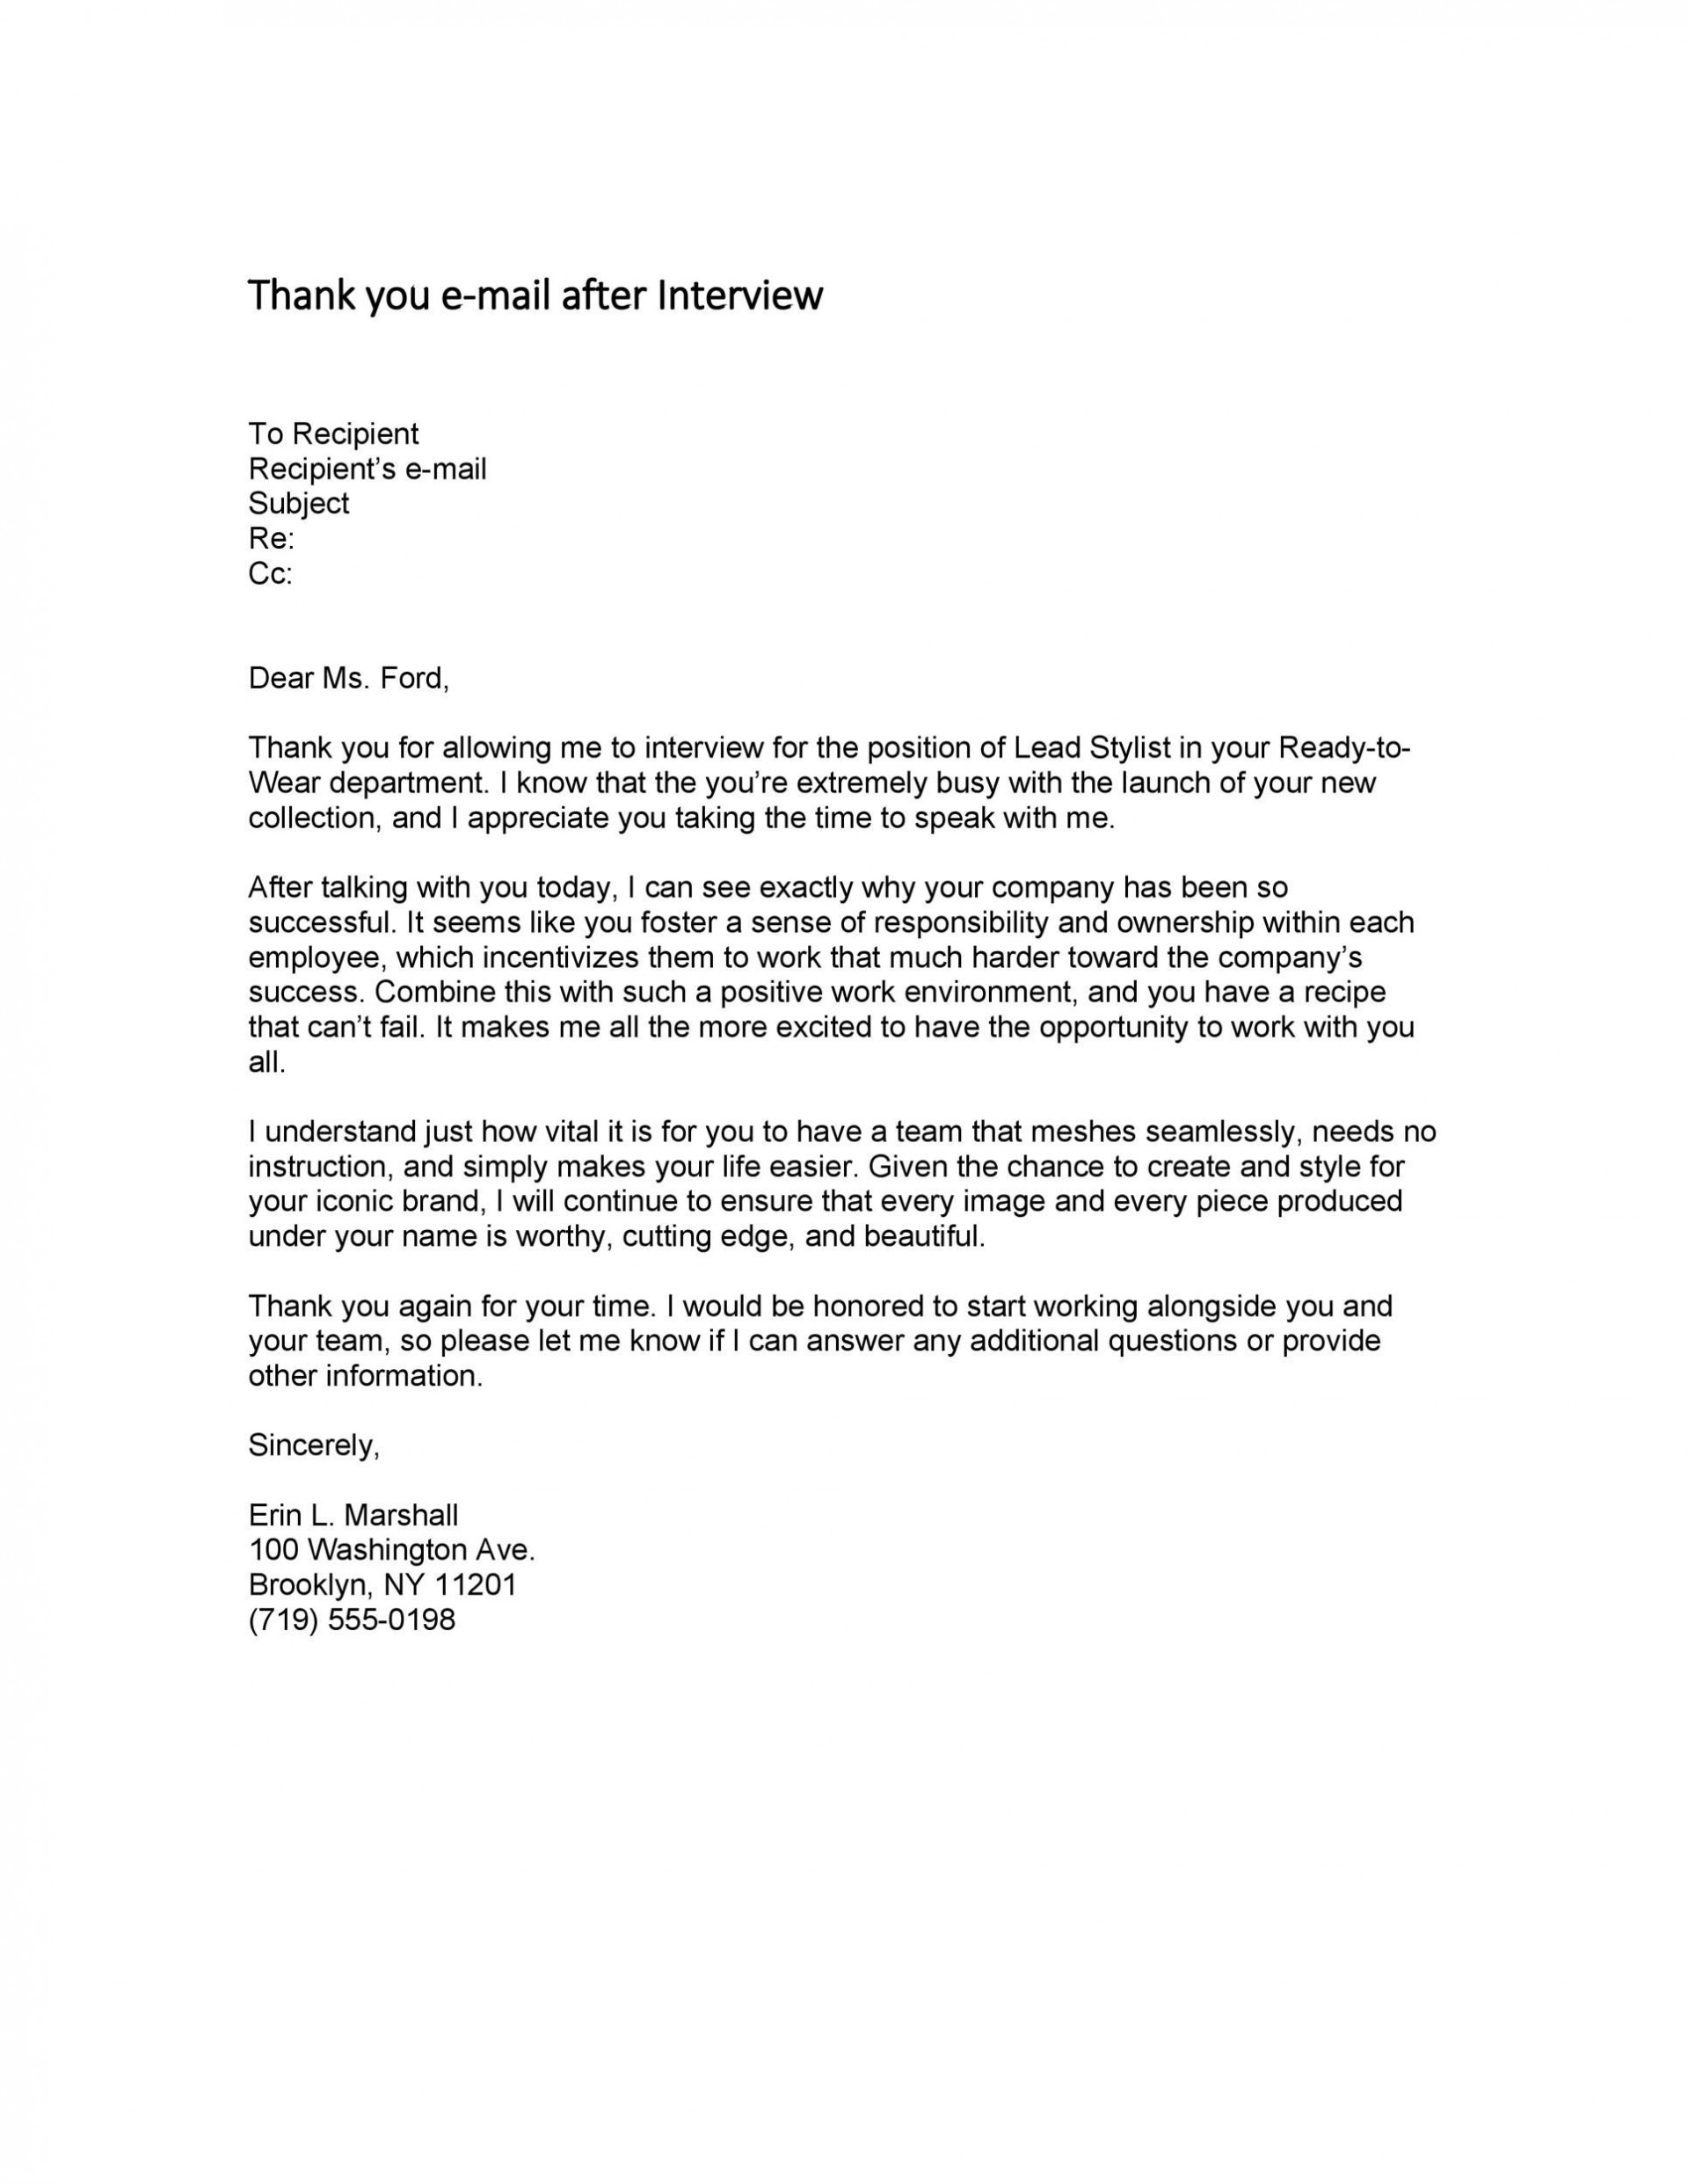 009 Beautiful Interview Thank You Email Template Picture  After Phone Sample 2nd Post1920